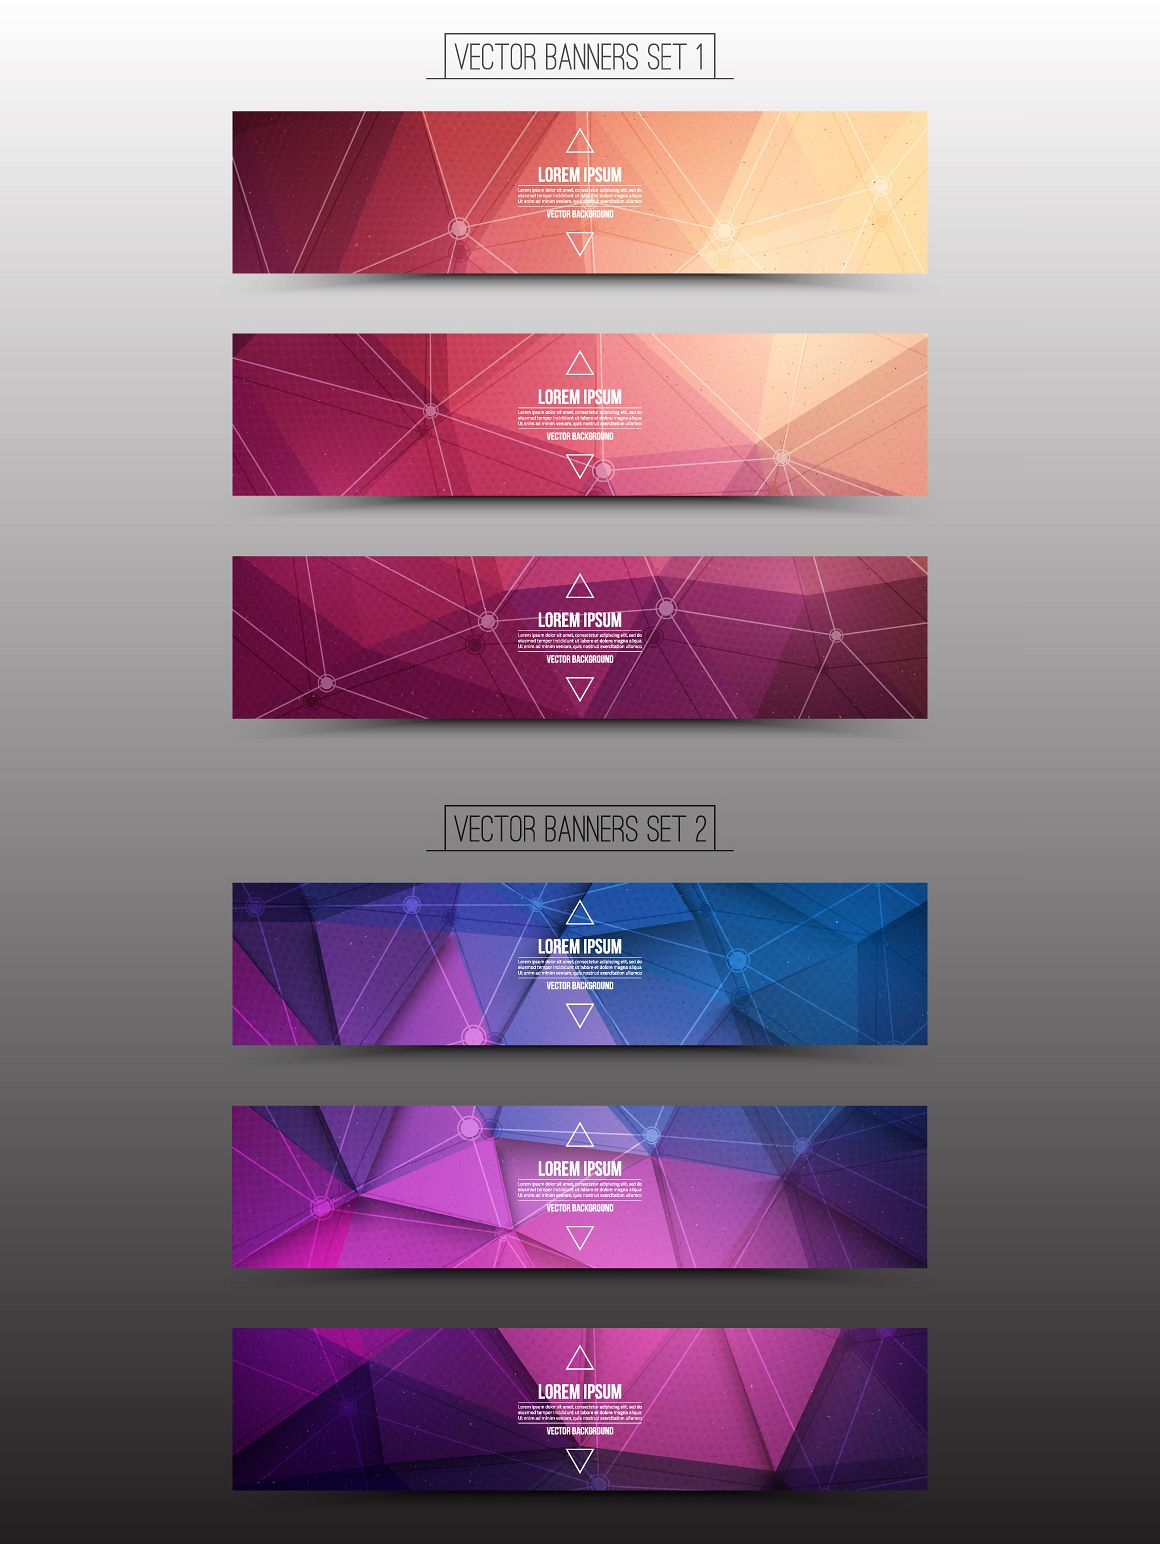 Technological Vector Web Banners Web Banner Design Banner Design Inspiration Web Banner